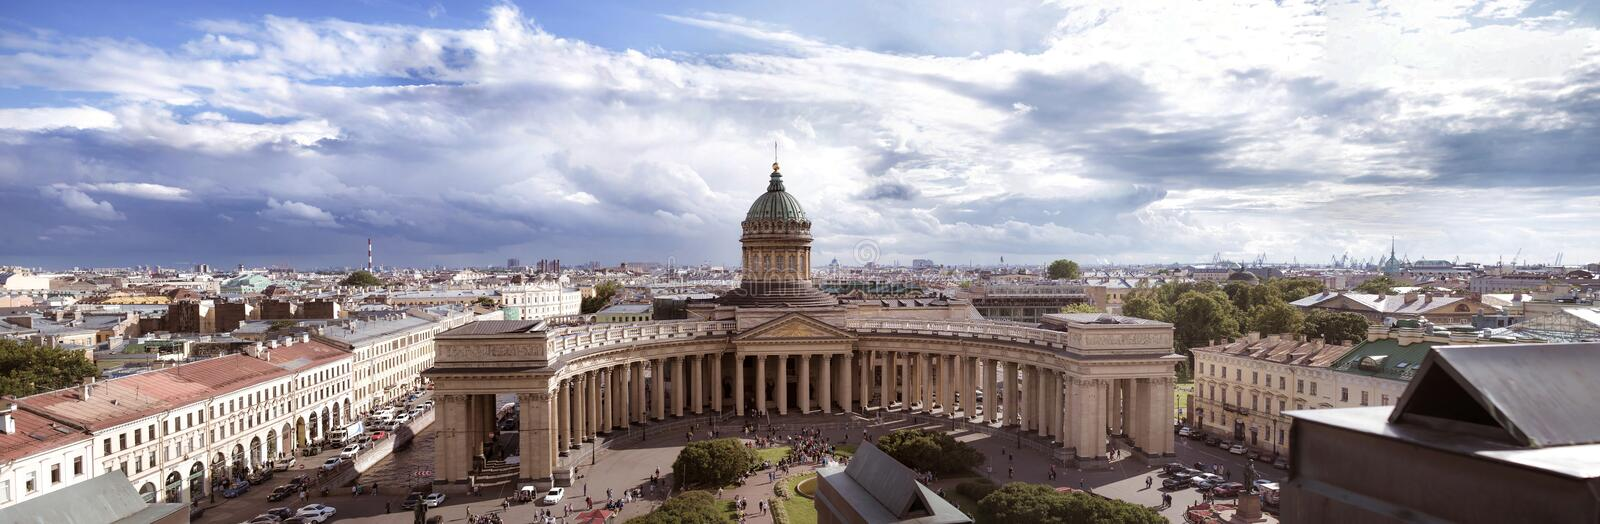 Panoramic view of Kazansky cathedral Saint Petersburg, Russia. Sky view stock photo